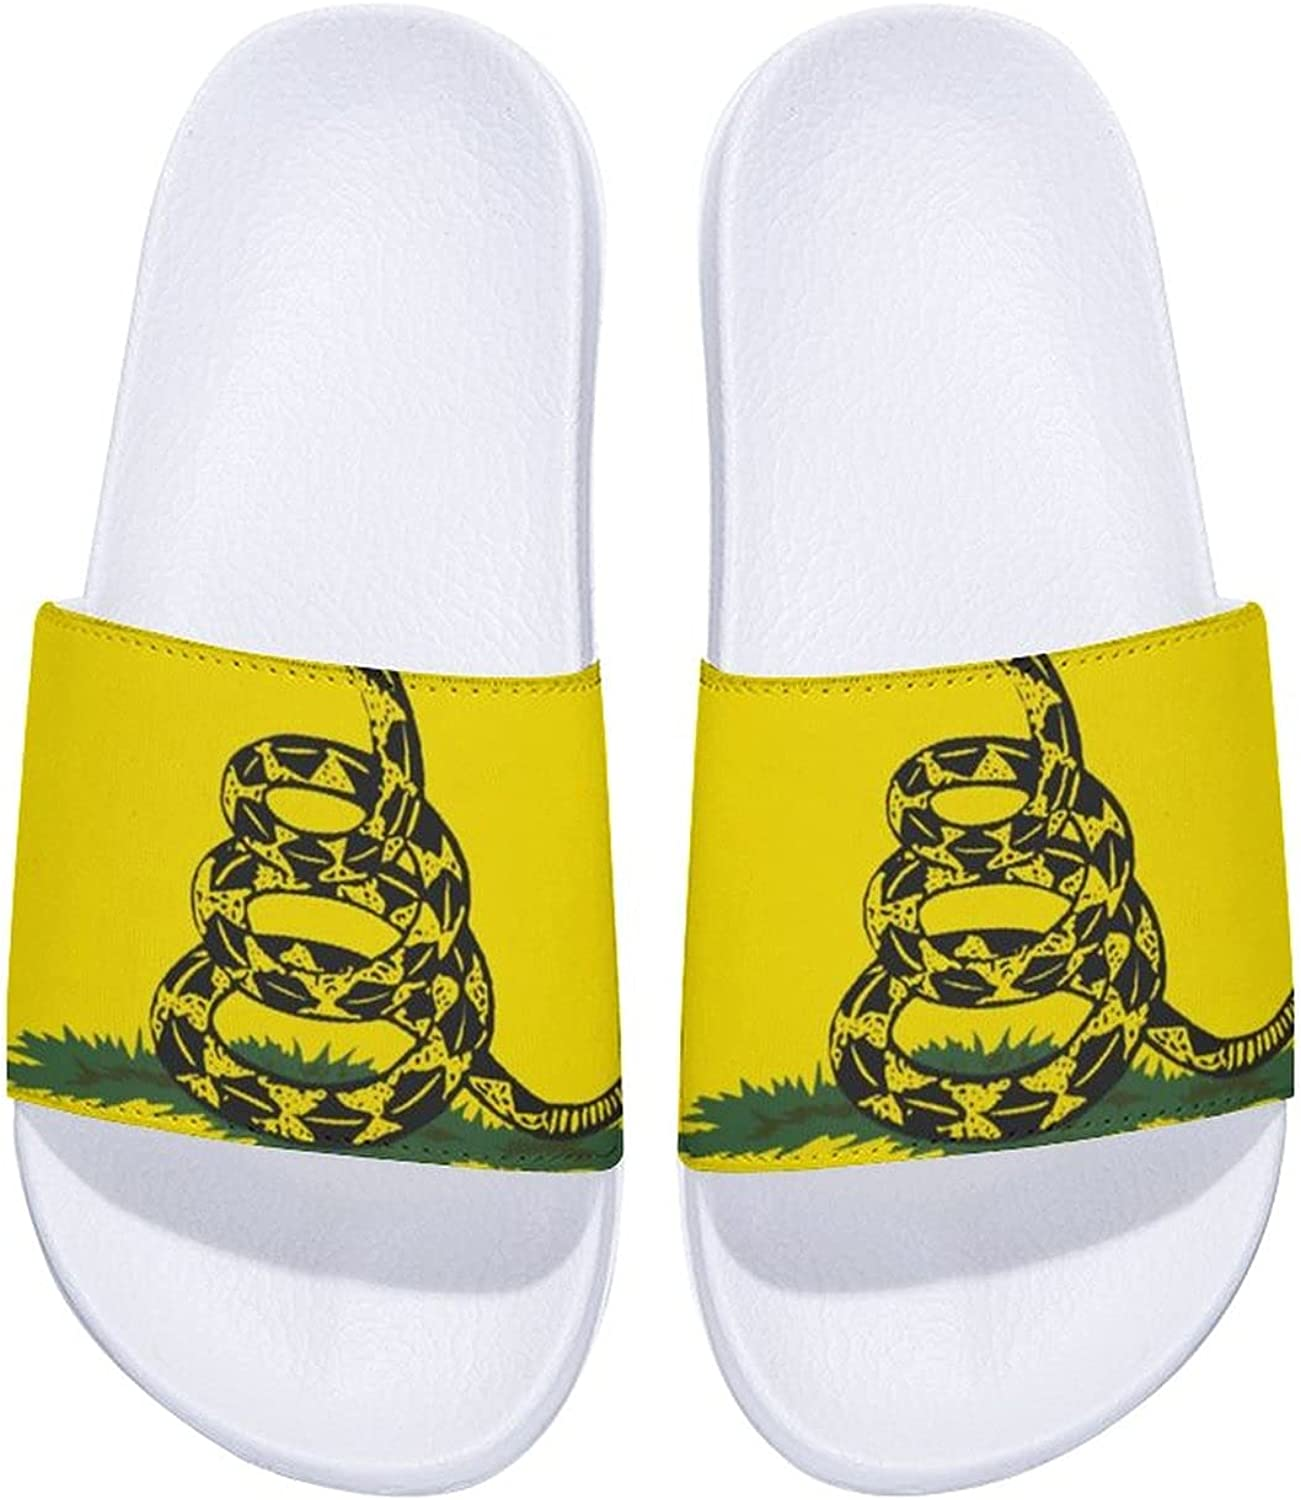 No Step On Snek Chicago Mall Men's and Sandals Indoor Women's Cheap mail order sales O Slide Comfort